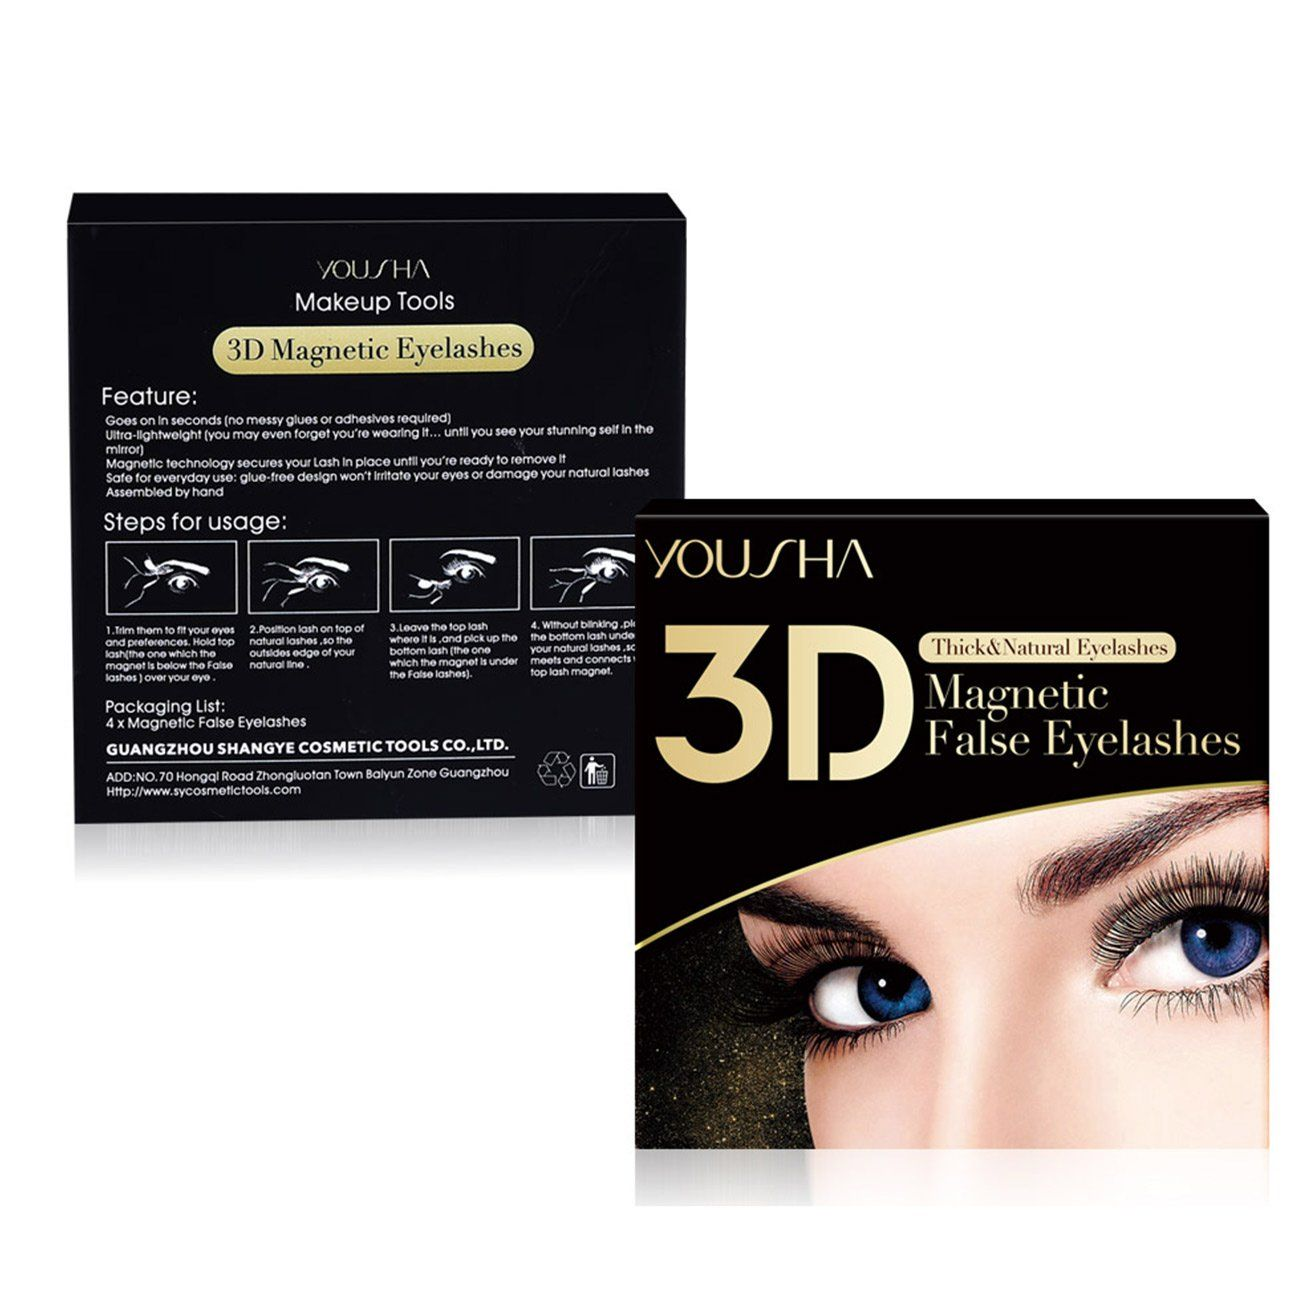 d7b40052e57 Yousha Three Ultra Thin Magnet Magnetic Fasle Eyelashes extensions 3D  Reusable Fake Long Eye Lashes Cover the entire eyelids for Halloween 1 pair  4 piece ...